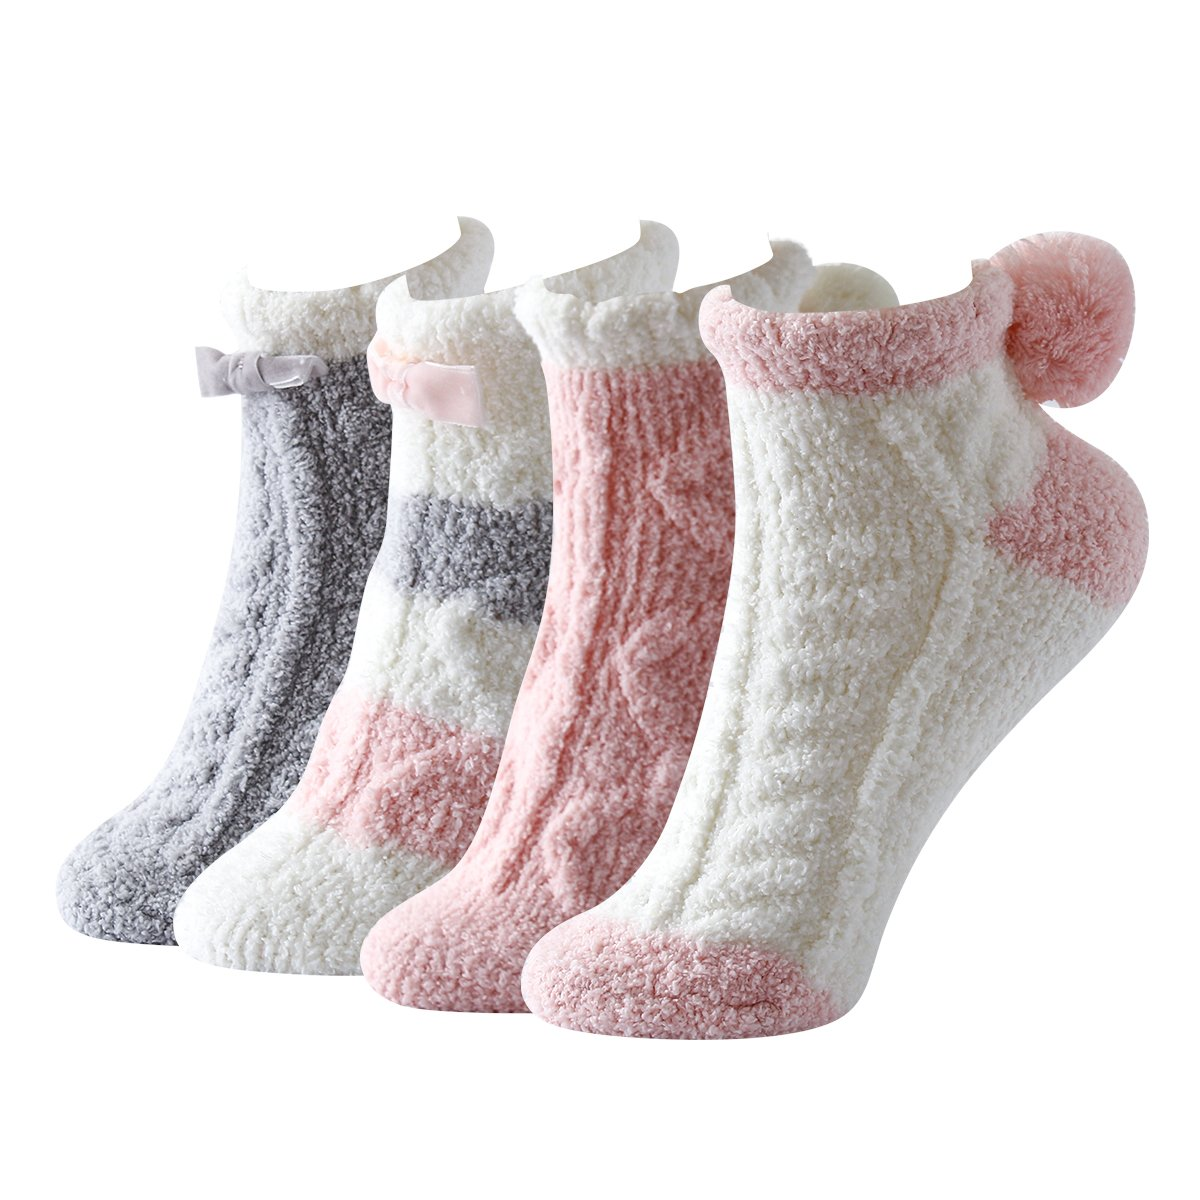 Skola Soft Cozy Warm Slipper Socks Womens Non Skid Grip Fuzzy 4 (Pink series)